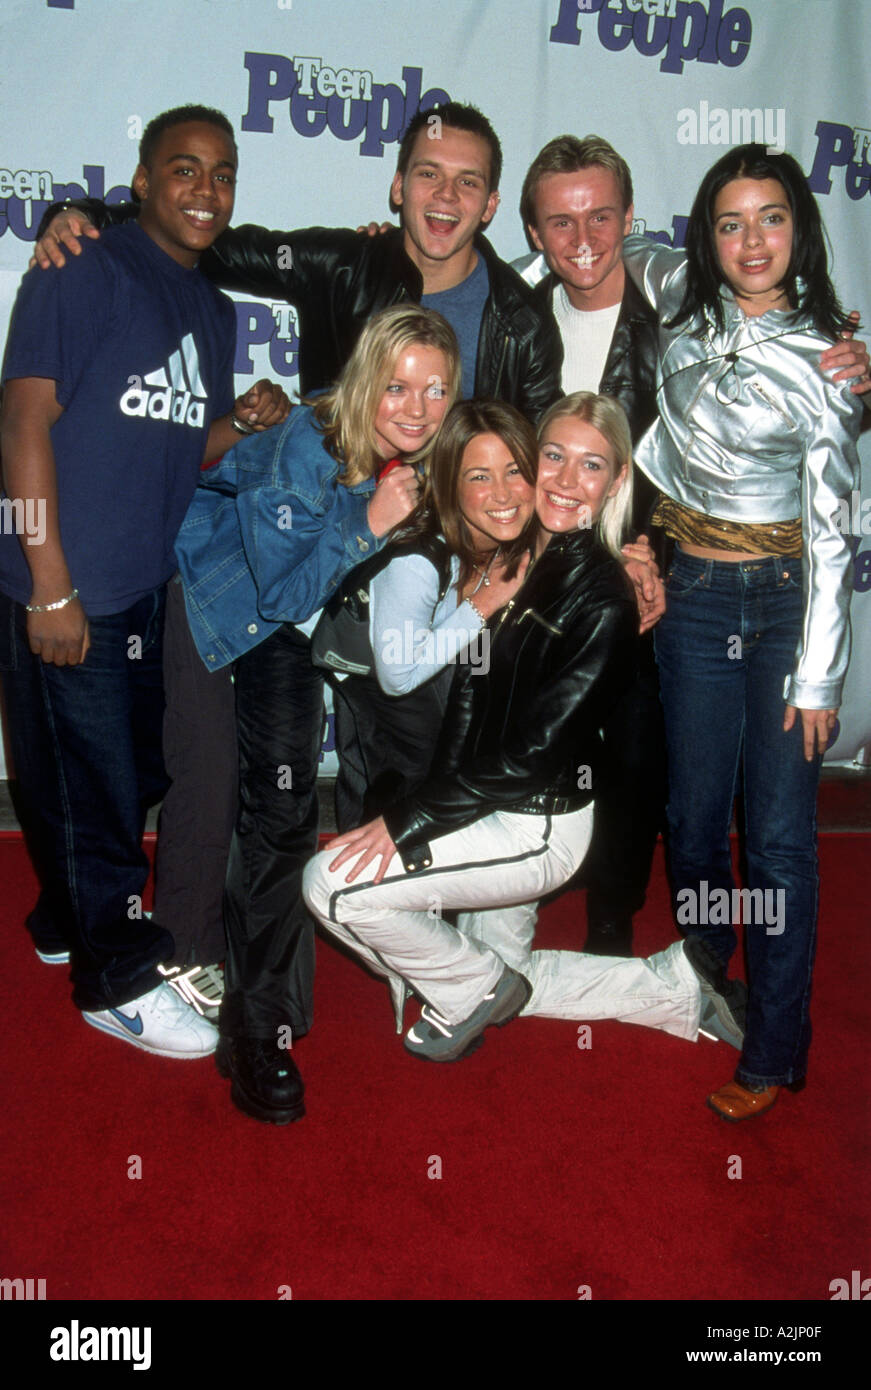 S CLUB 7 British pop group in late 1990s - Stock Image